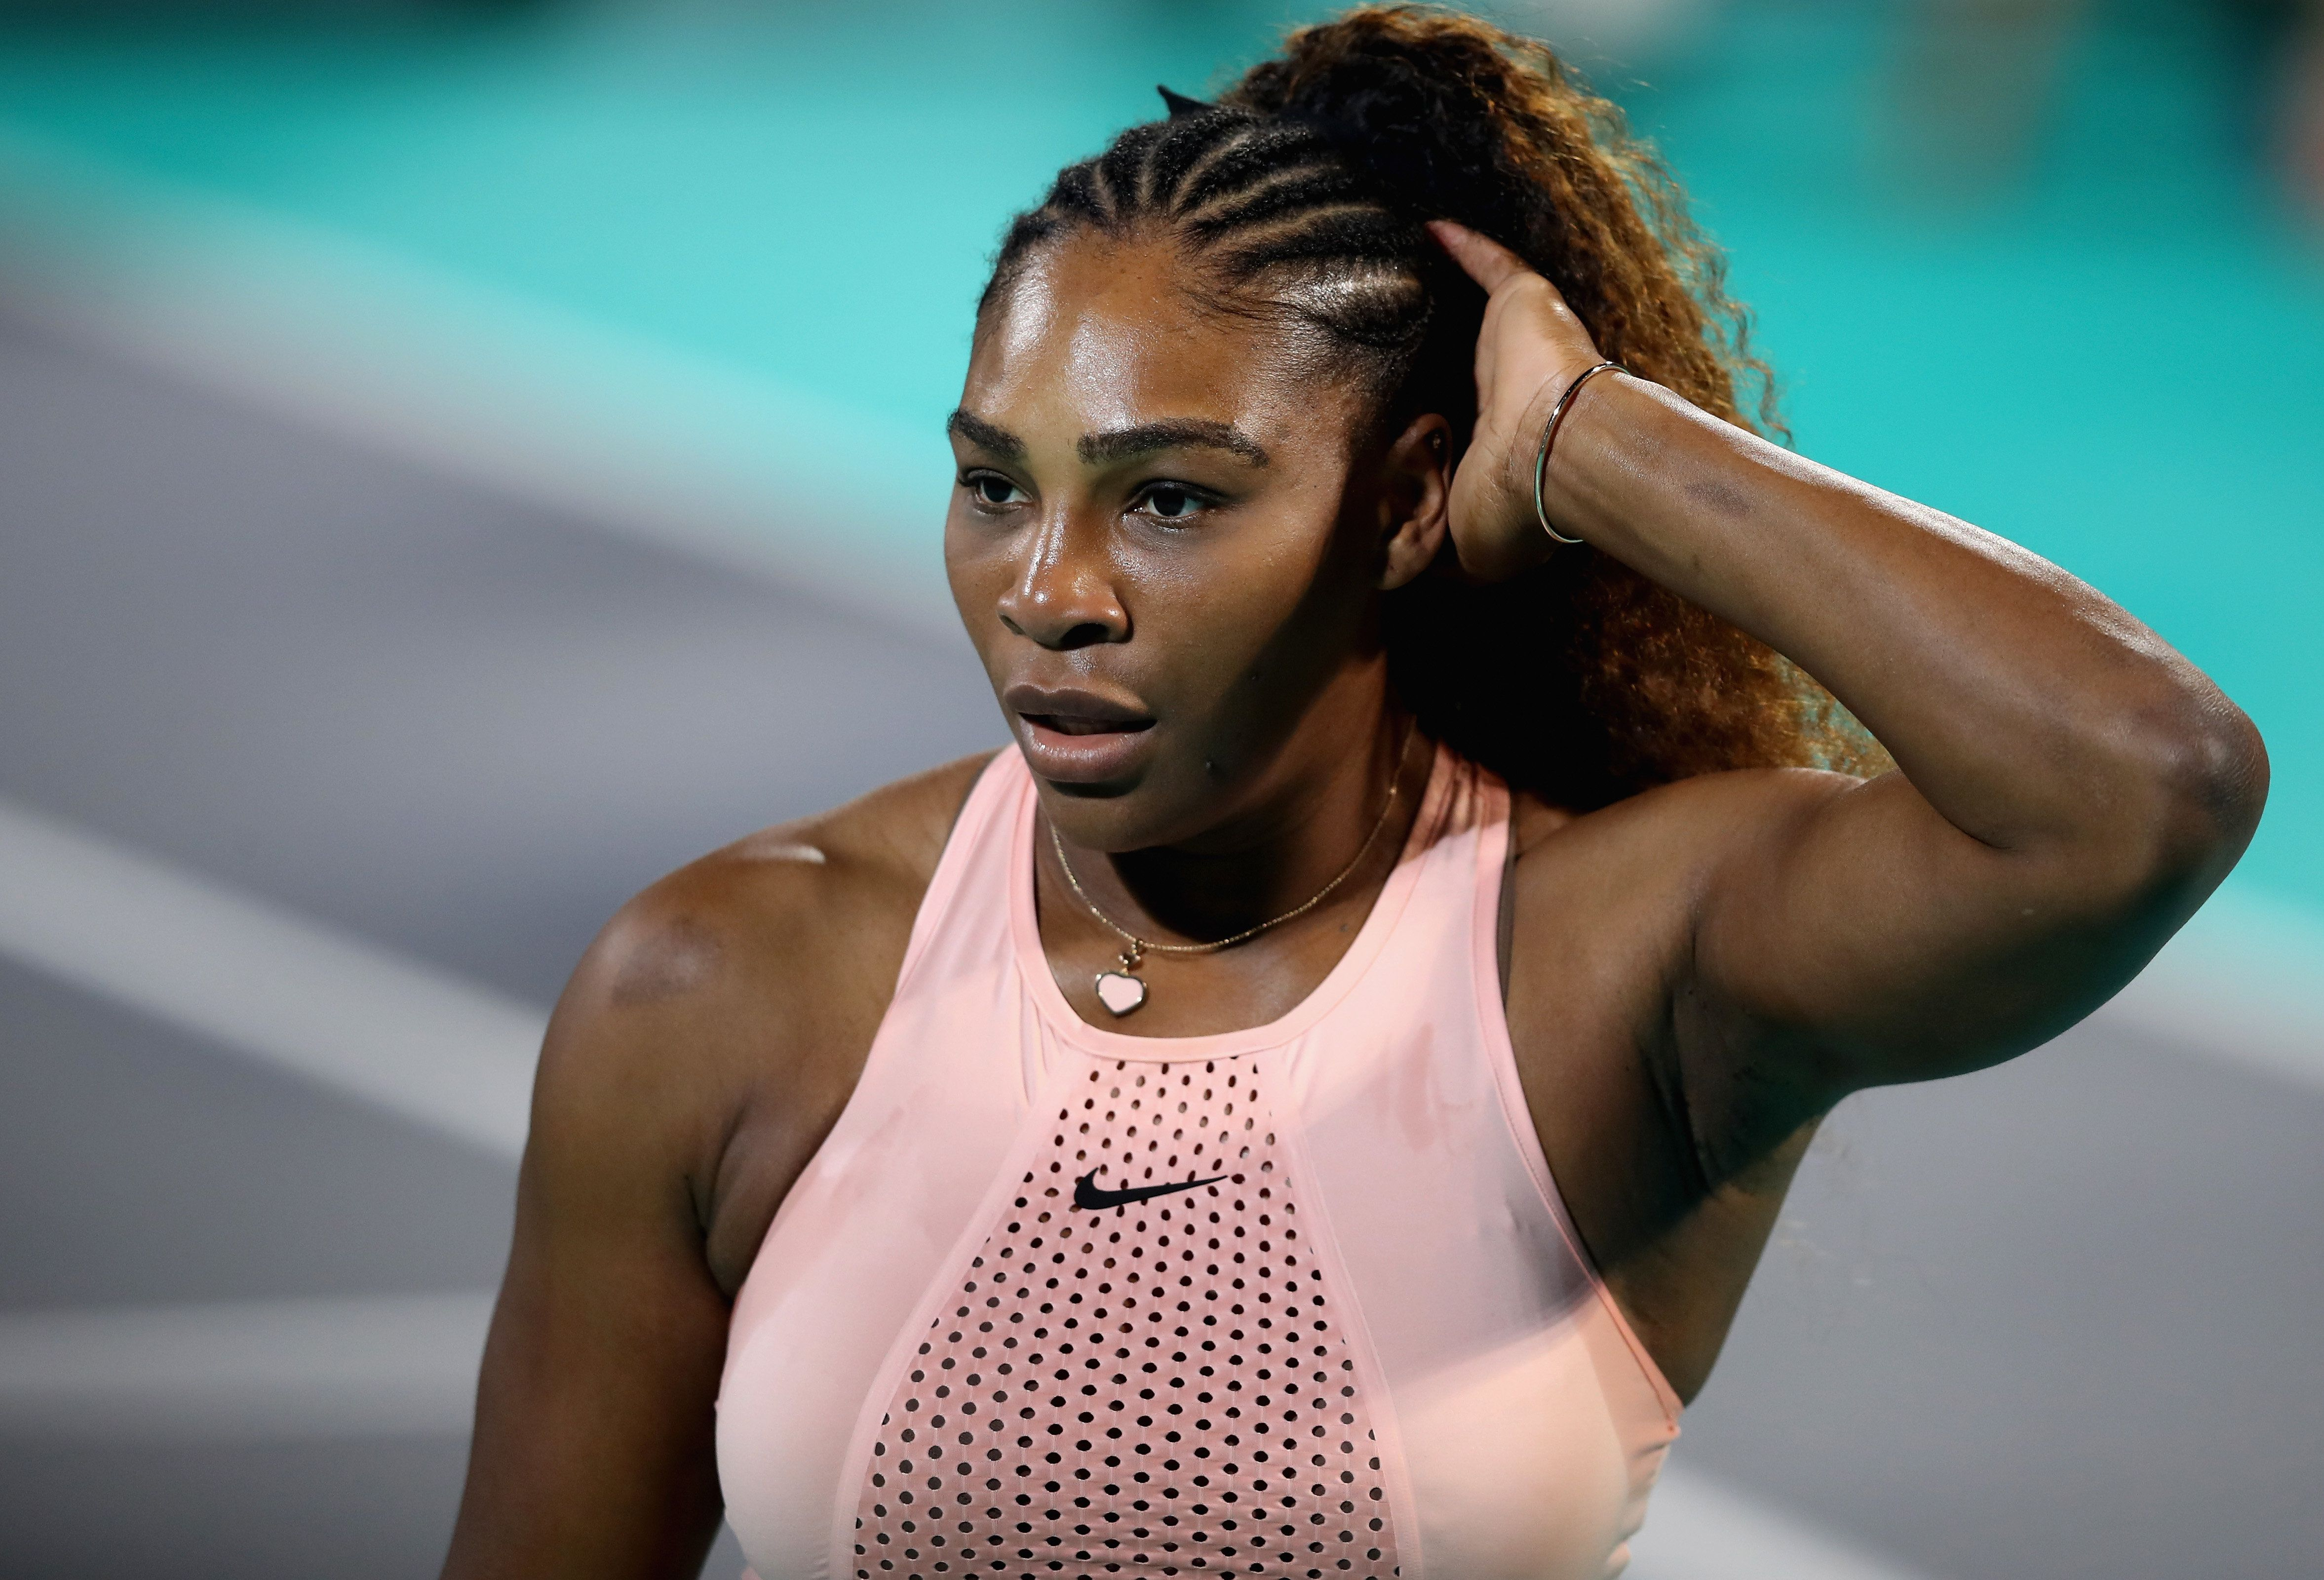 ABU DHABI, UNITED ARAB EMIRATES - DECEMBER 27:  Serena Williams of United States reacts during her womens's singles match on day one of the Mubadala World Tennis Championship at International Tennis Centre Zayed Sports City on December 27, 2018 in Abu Dhabi, United Arab Emirates.  (Photo by Francois Nel/Getty Images)